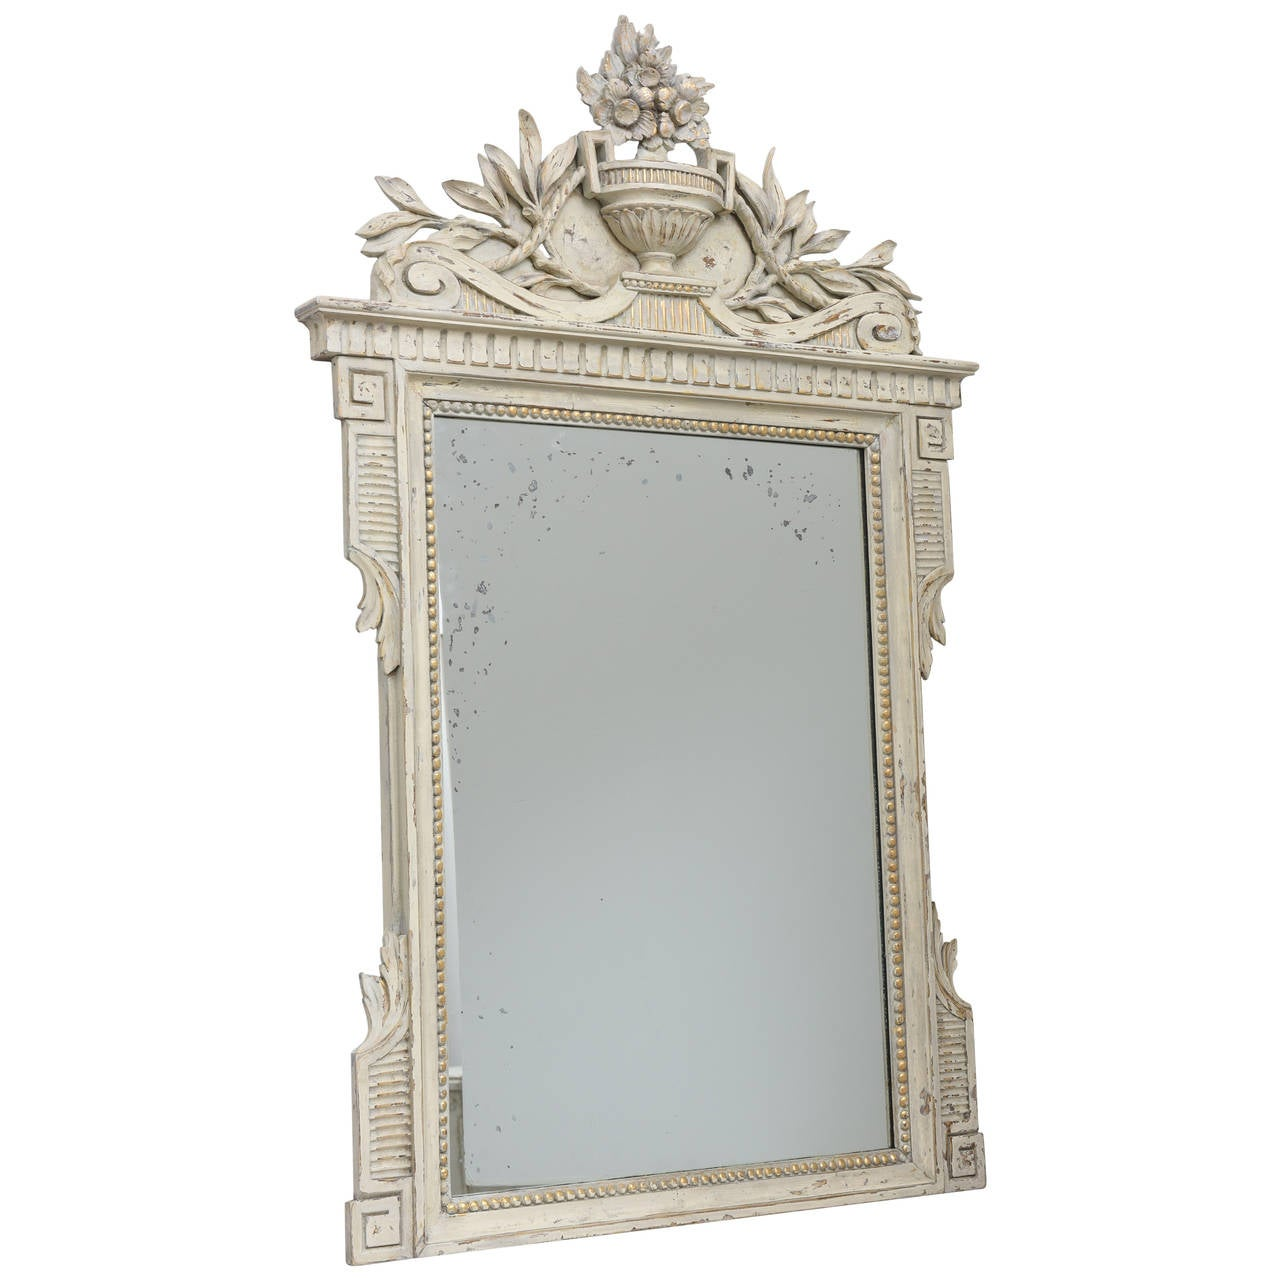 Antique painted gustavian style mirror at 1stdibs for Antique style wall mirror